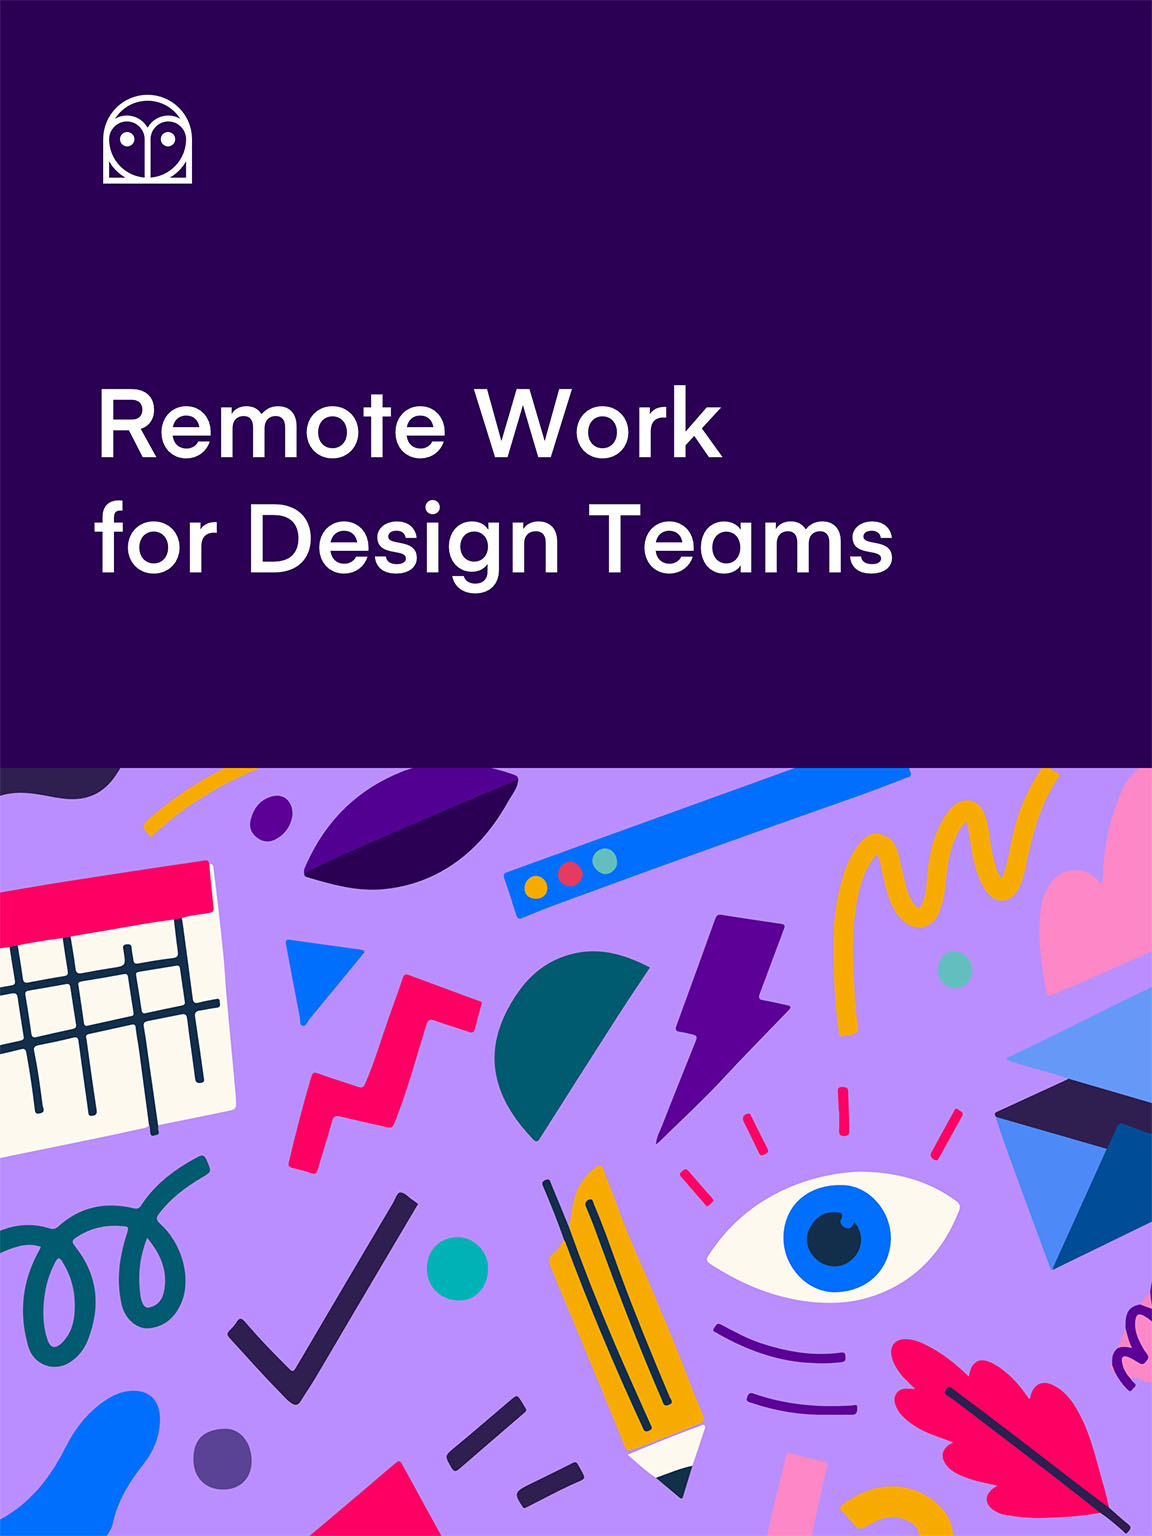 Remote Work for Design Teams